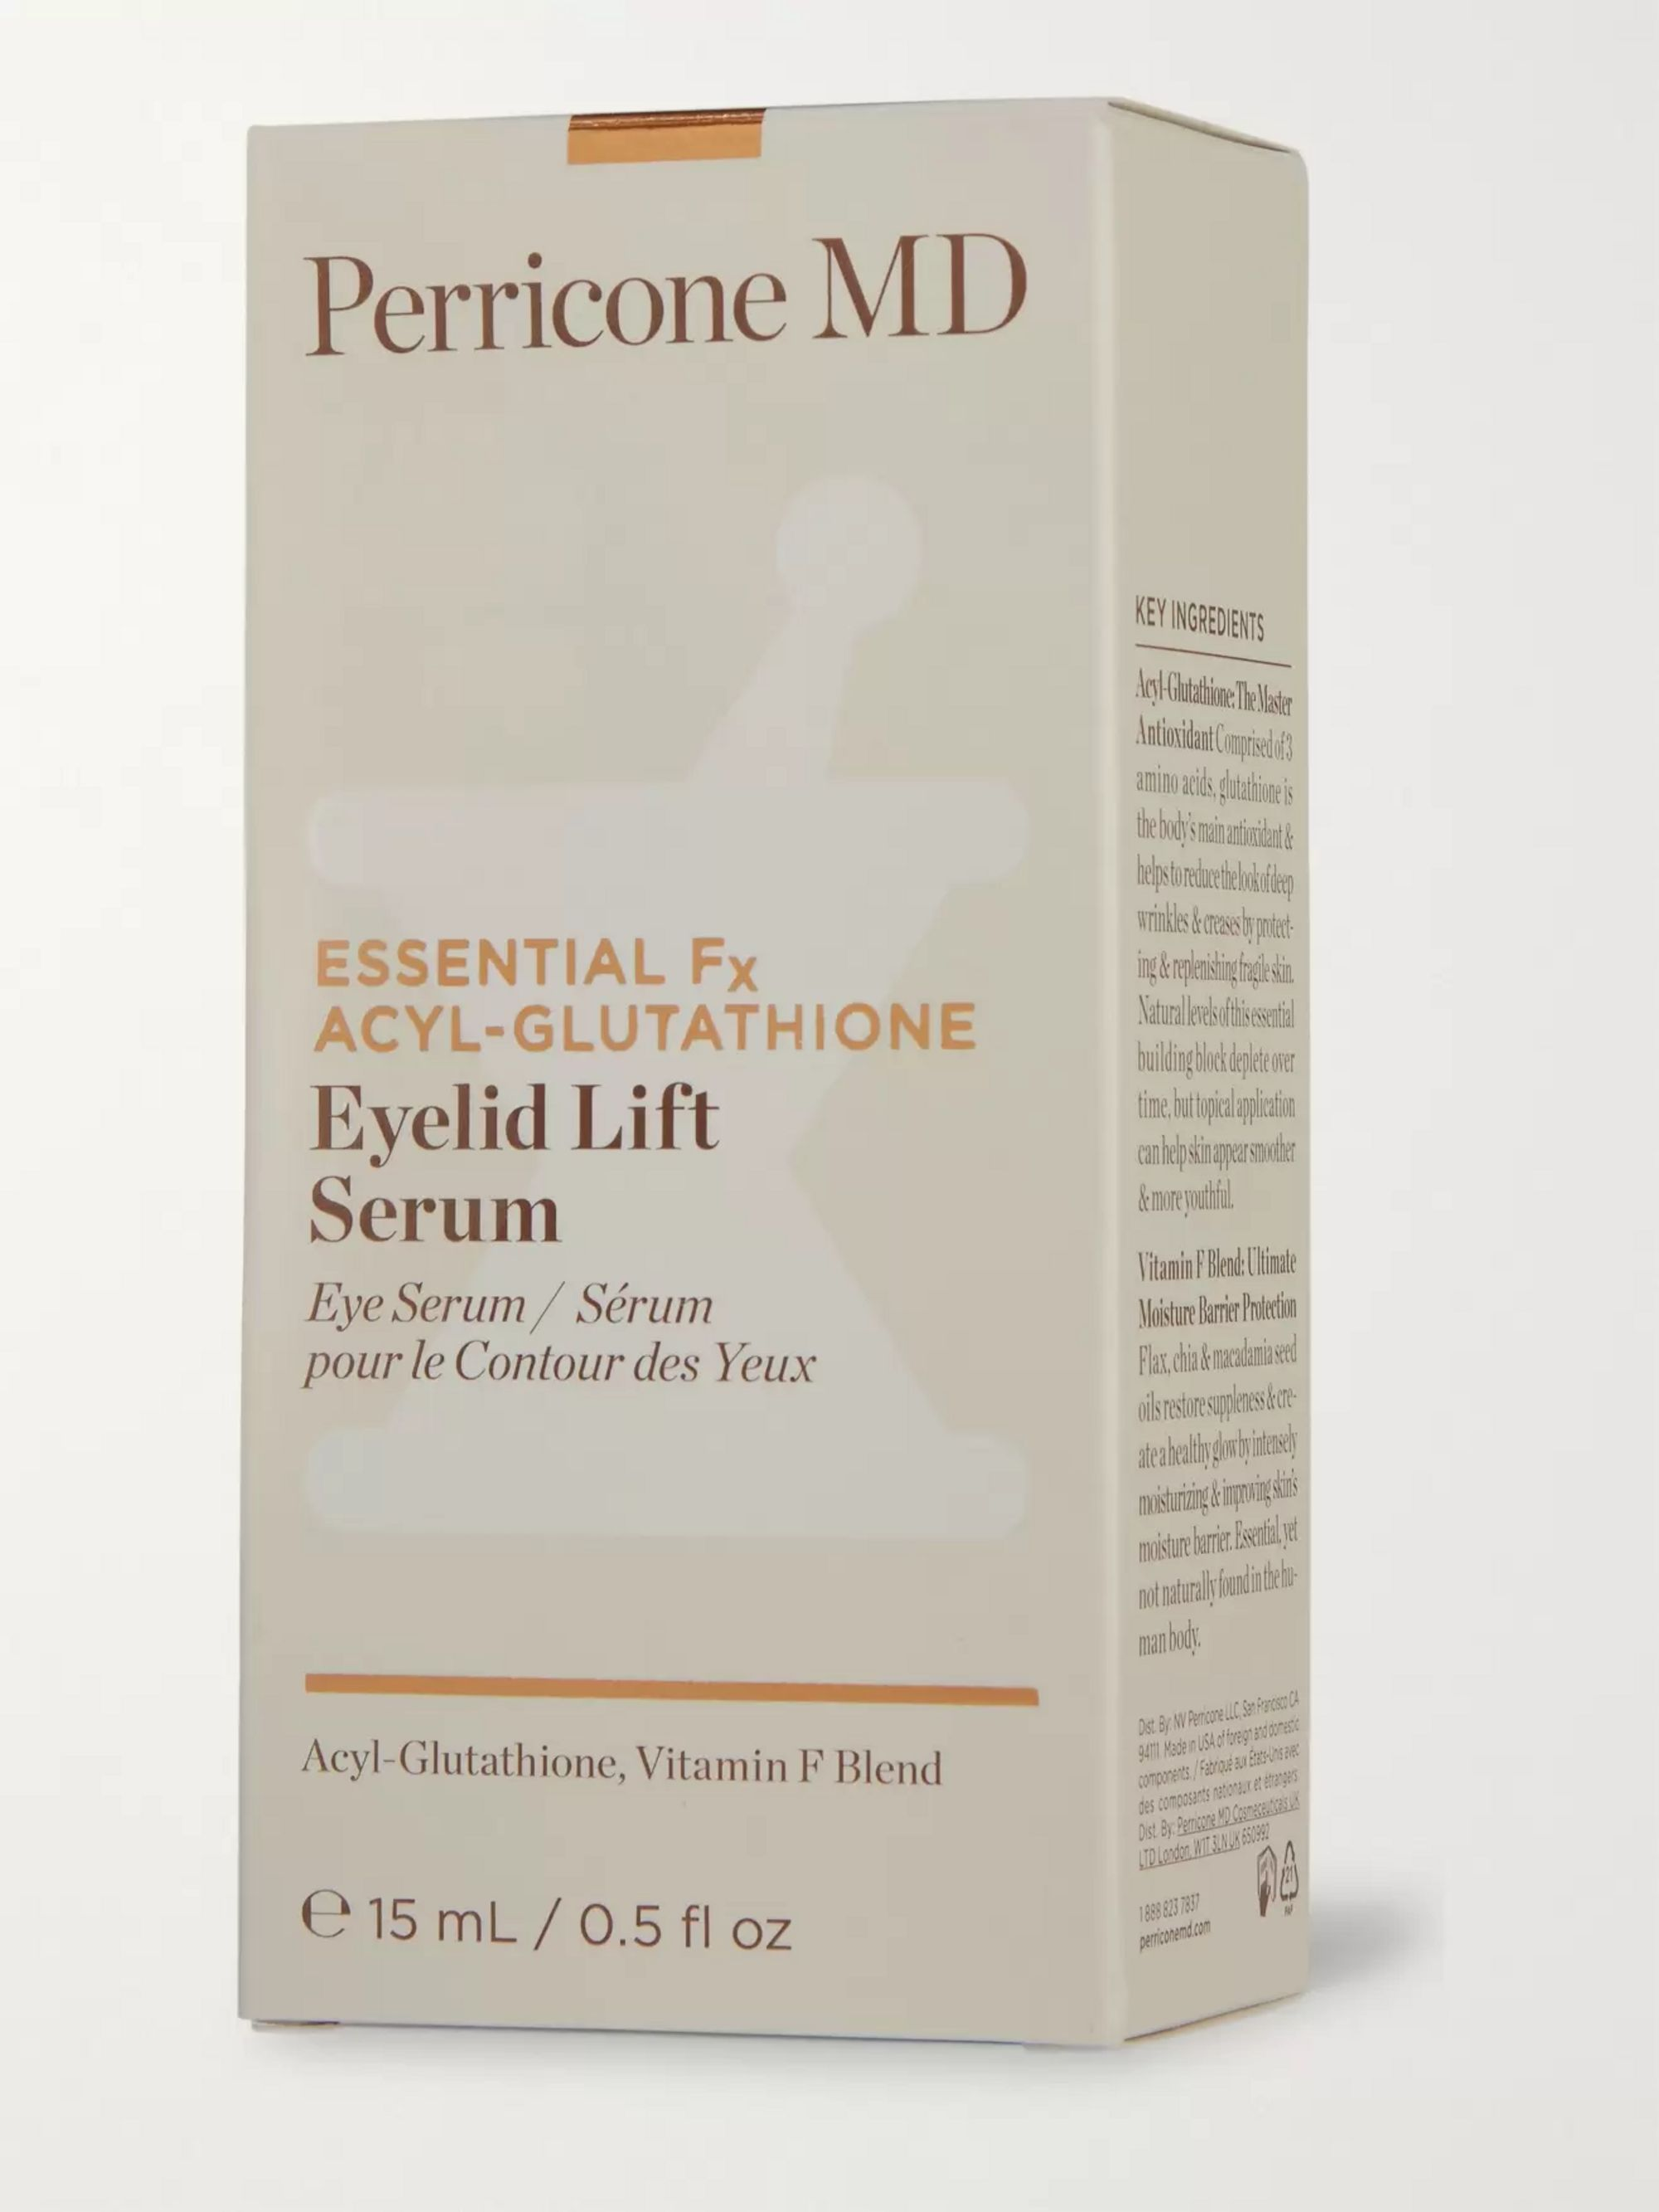 Perricone MD Fx Eyelid Lift Serum, 15ml